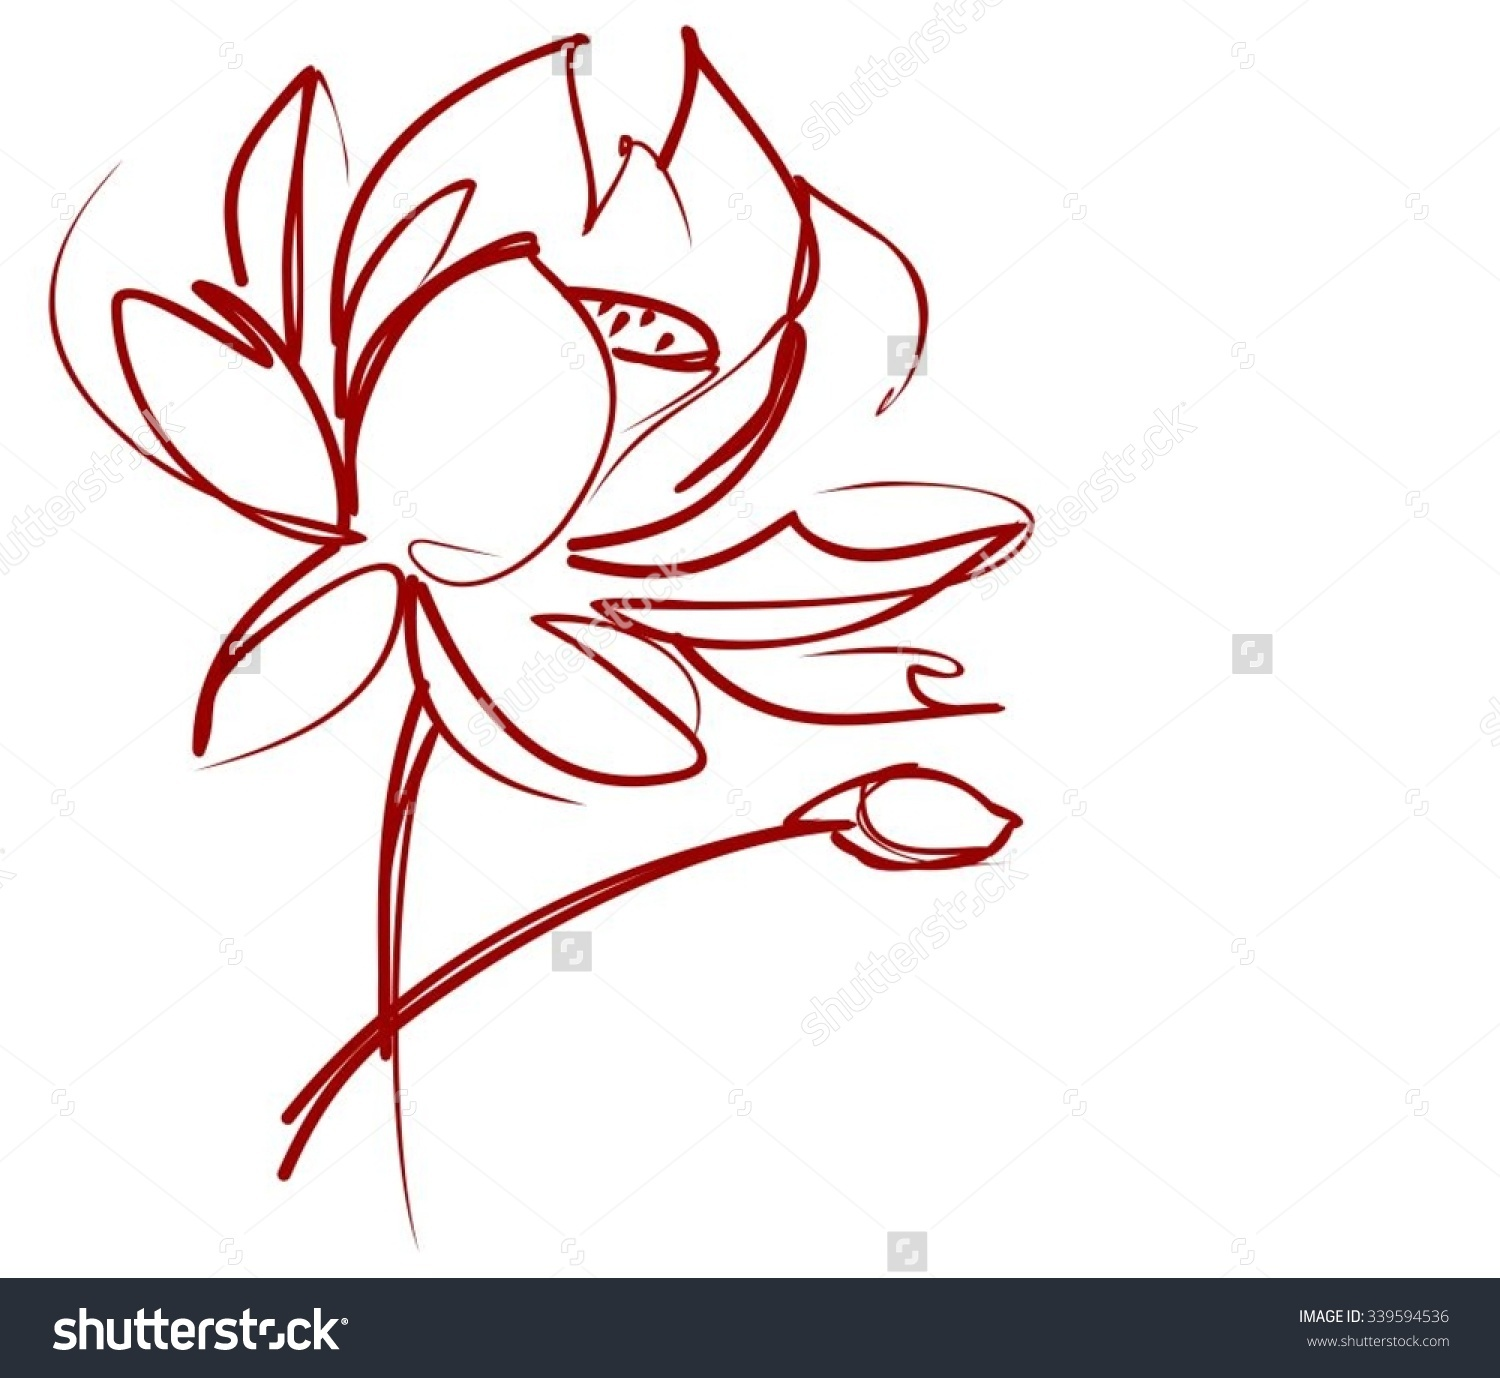 Lily graphics freeuse Water lily graphics - ClipartFest freeuse